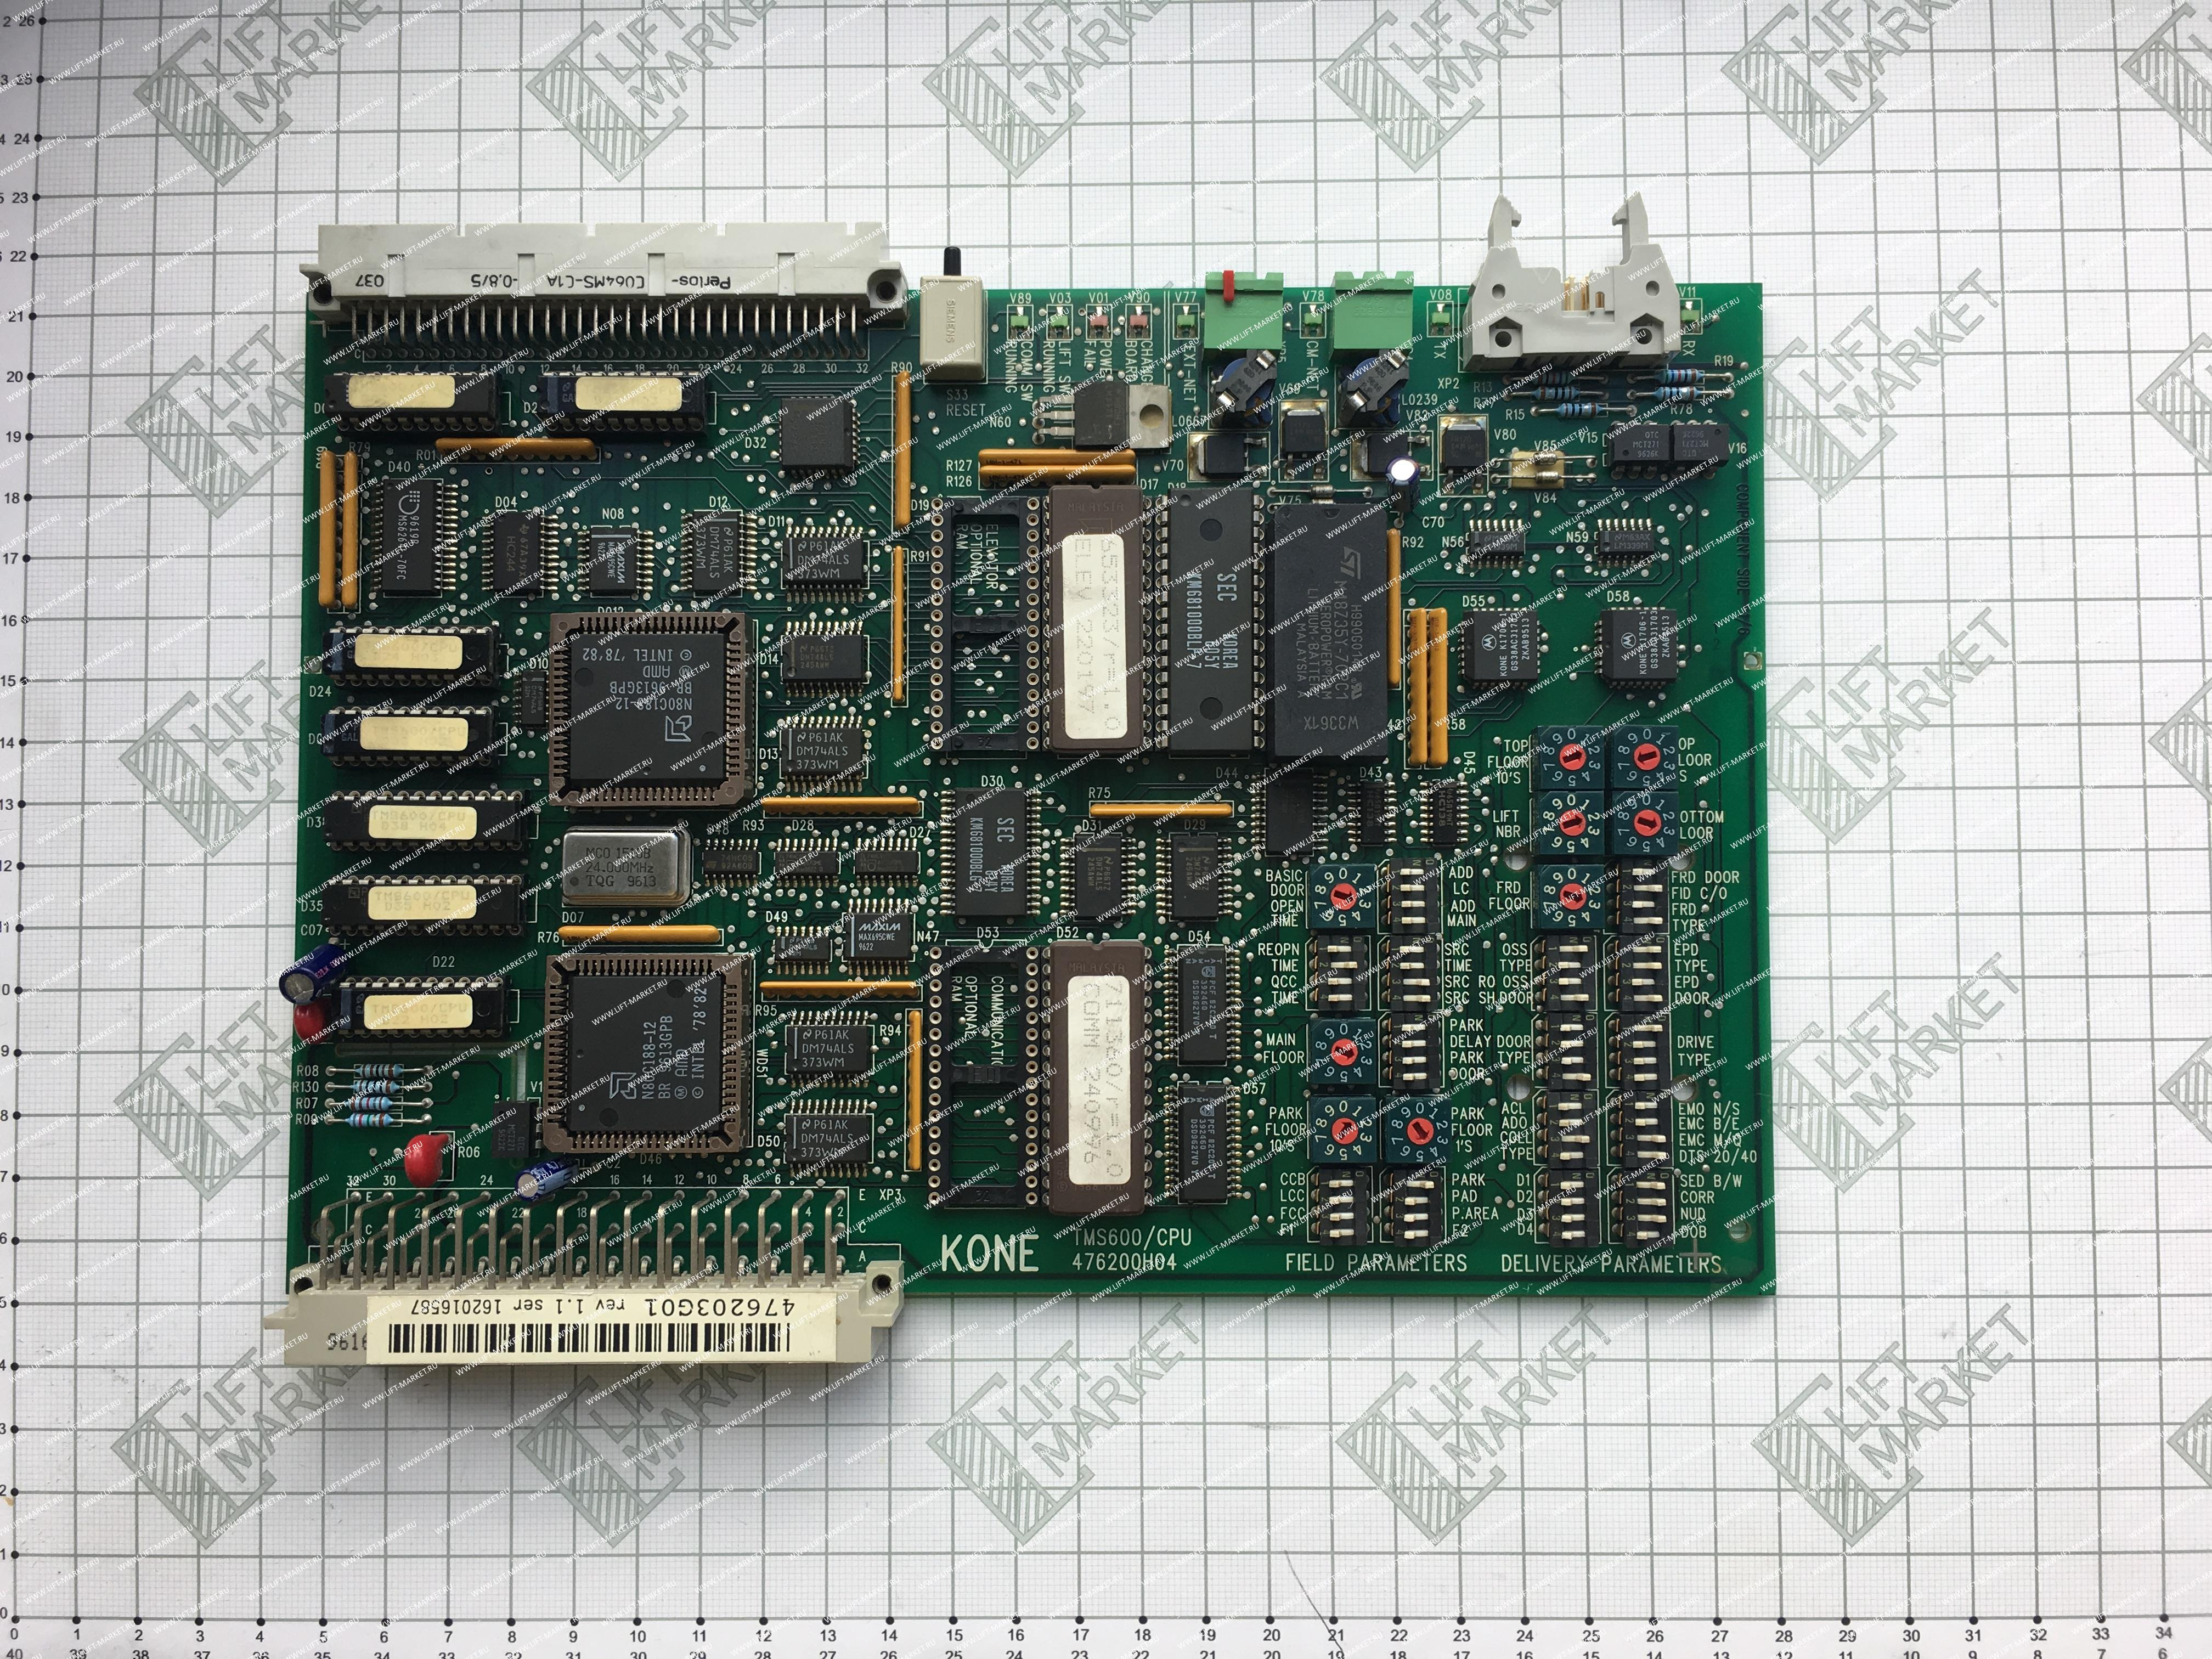 Плата TMS600/CPU ASSEMBLY KONE (КОНЕ) фото